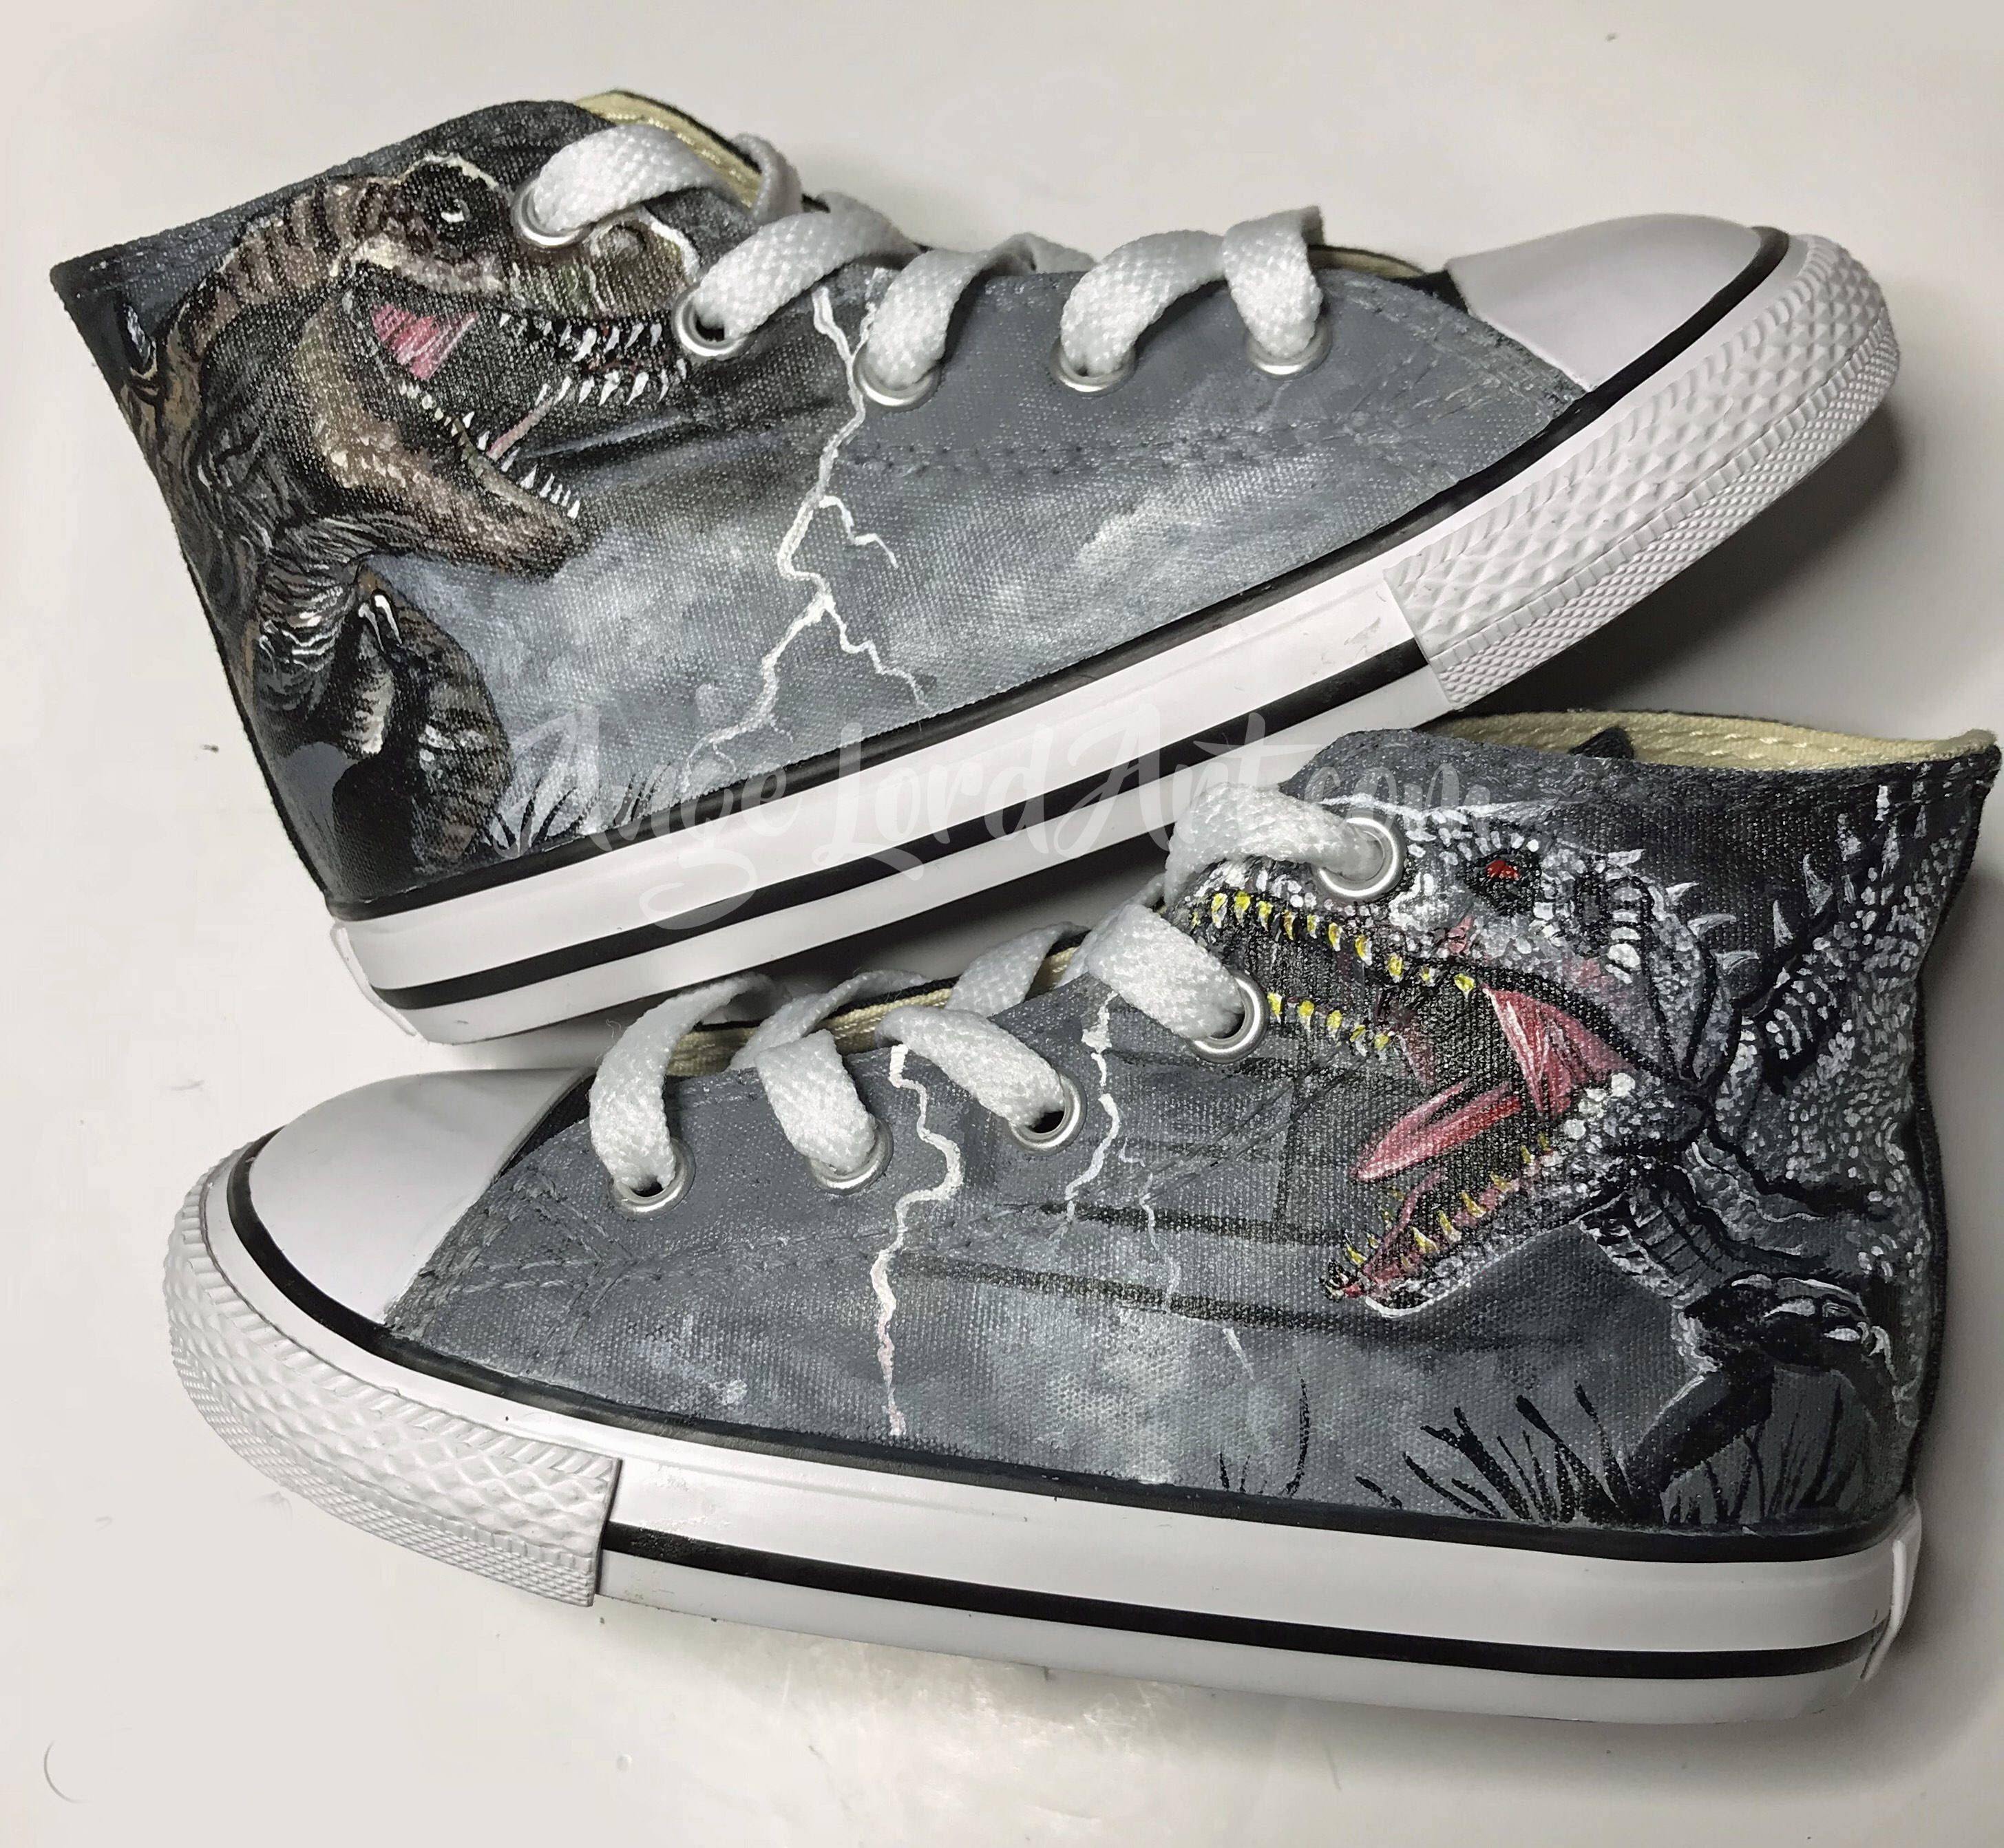 74794e3ccc82f Pin by Taylor McBride on Convers in 2019 | Dinosaur shoes, Painted ...